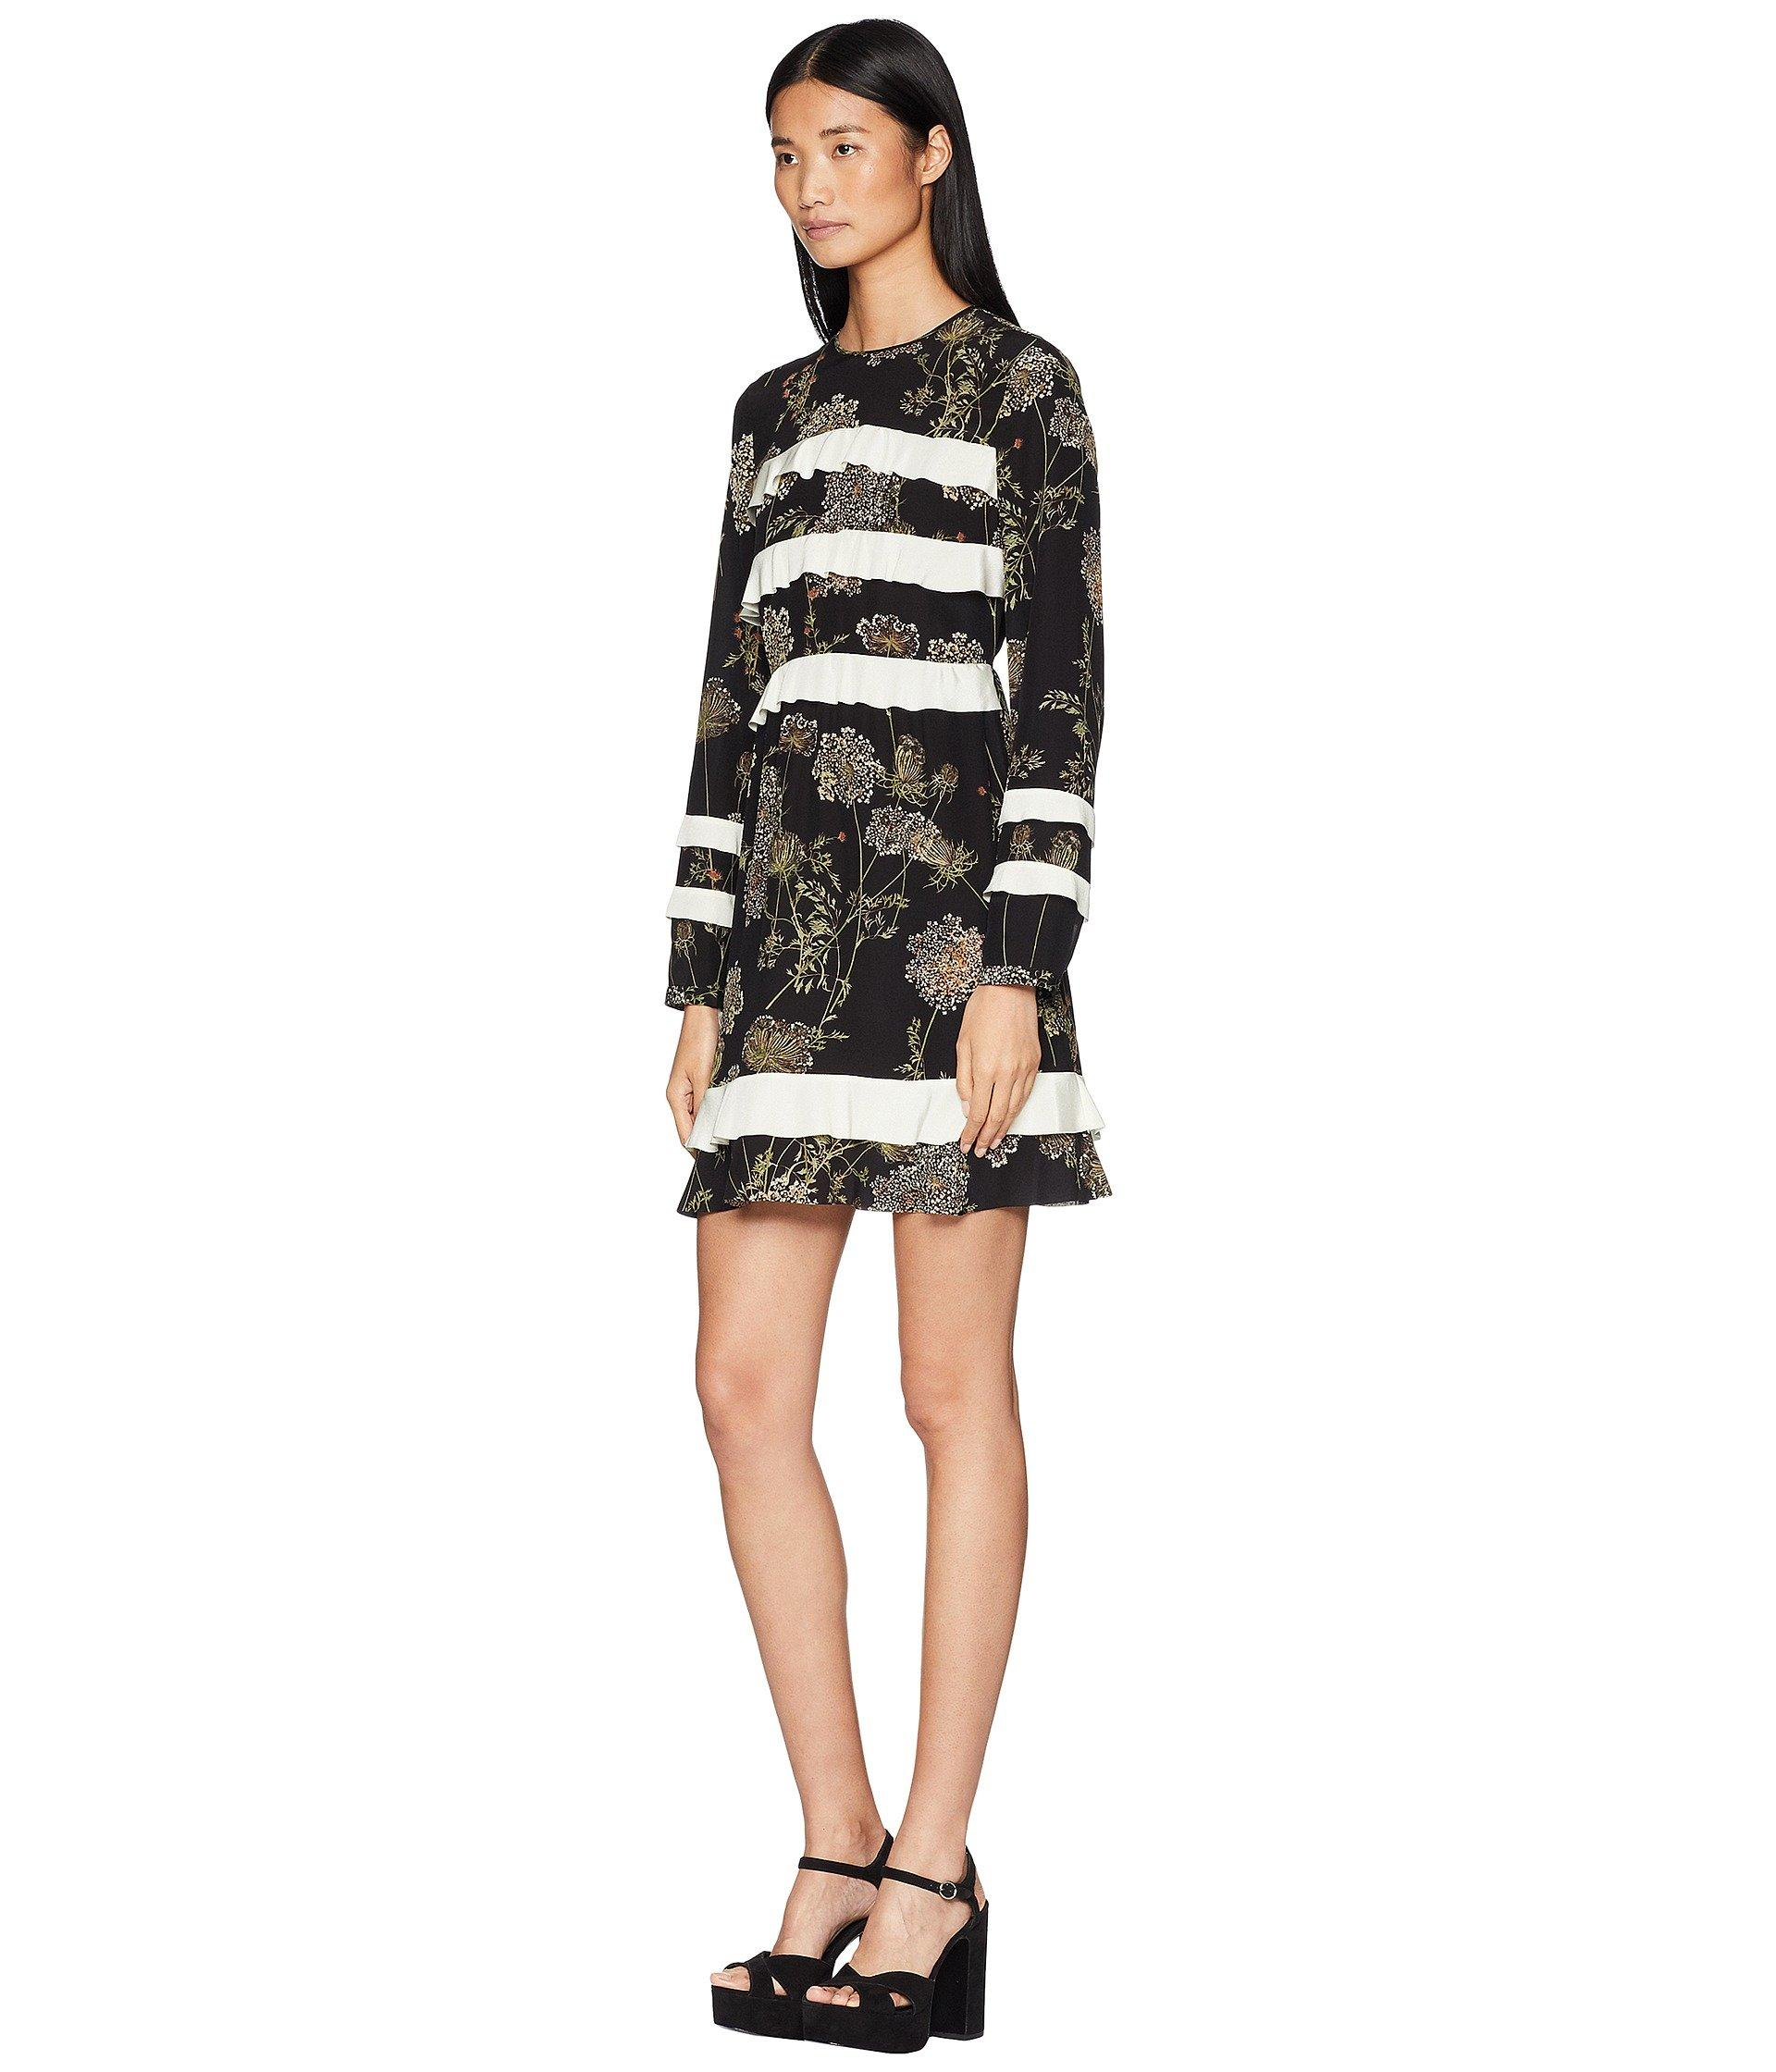 d7e6d13fe5 Lyst - RED Valentino Spontaneous Flowers Print, Silk Crepe De Chine And  Crepe De Chine in Black - Save 33%